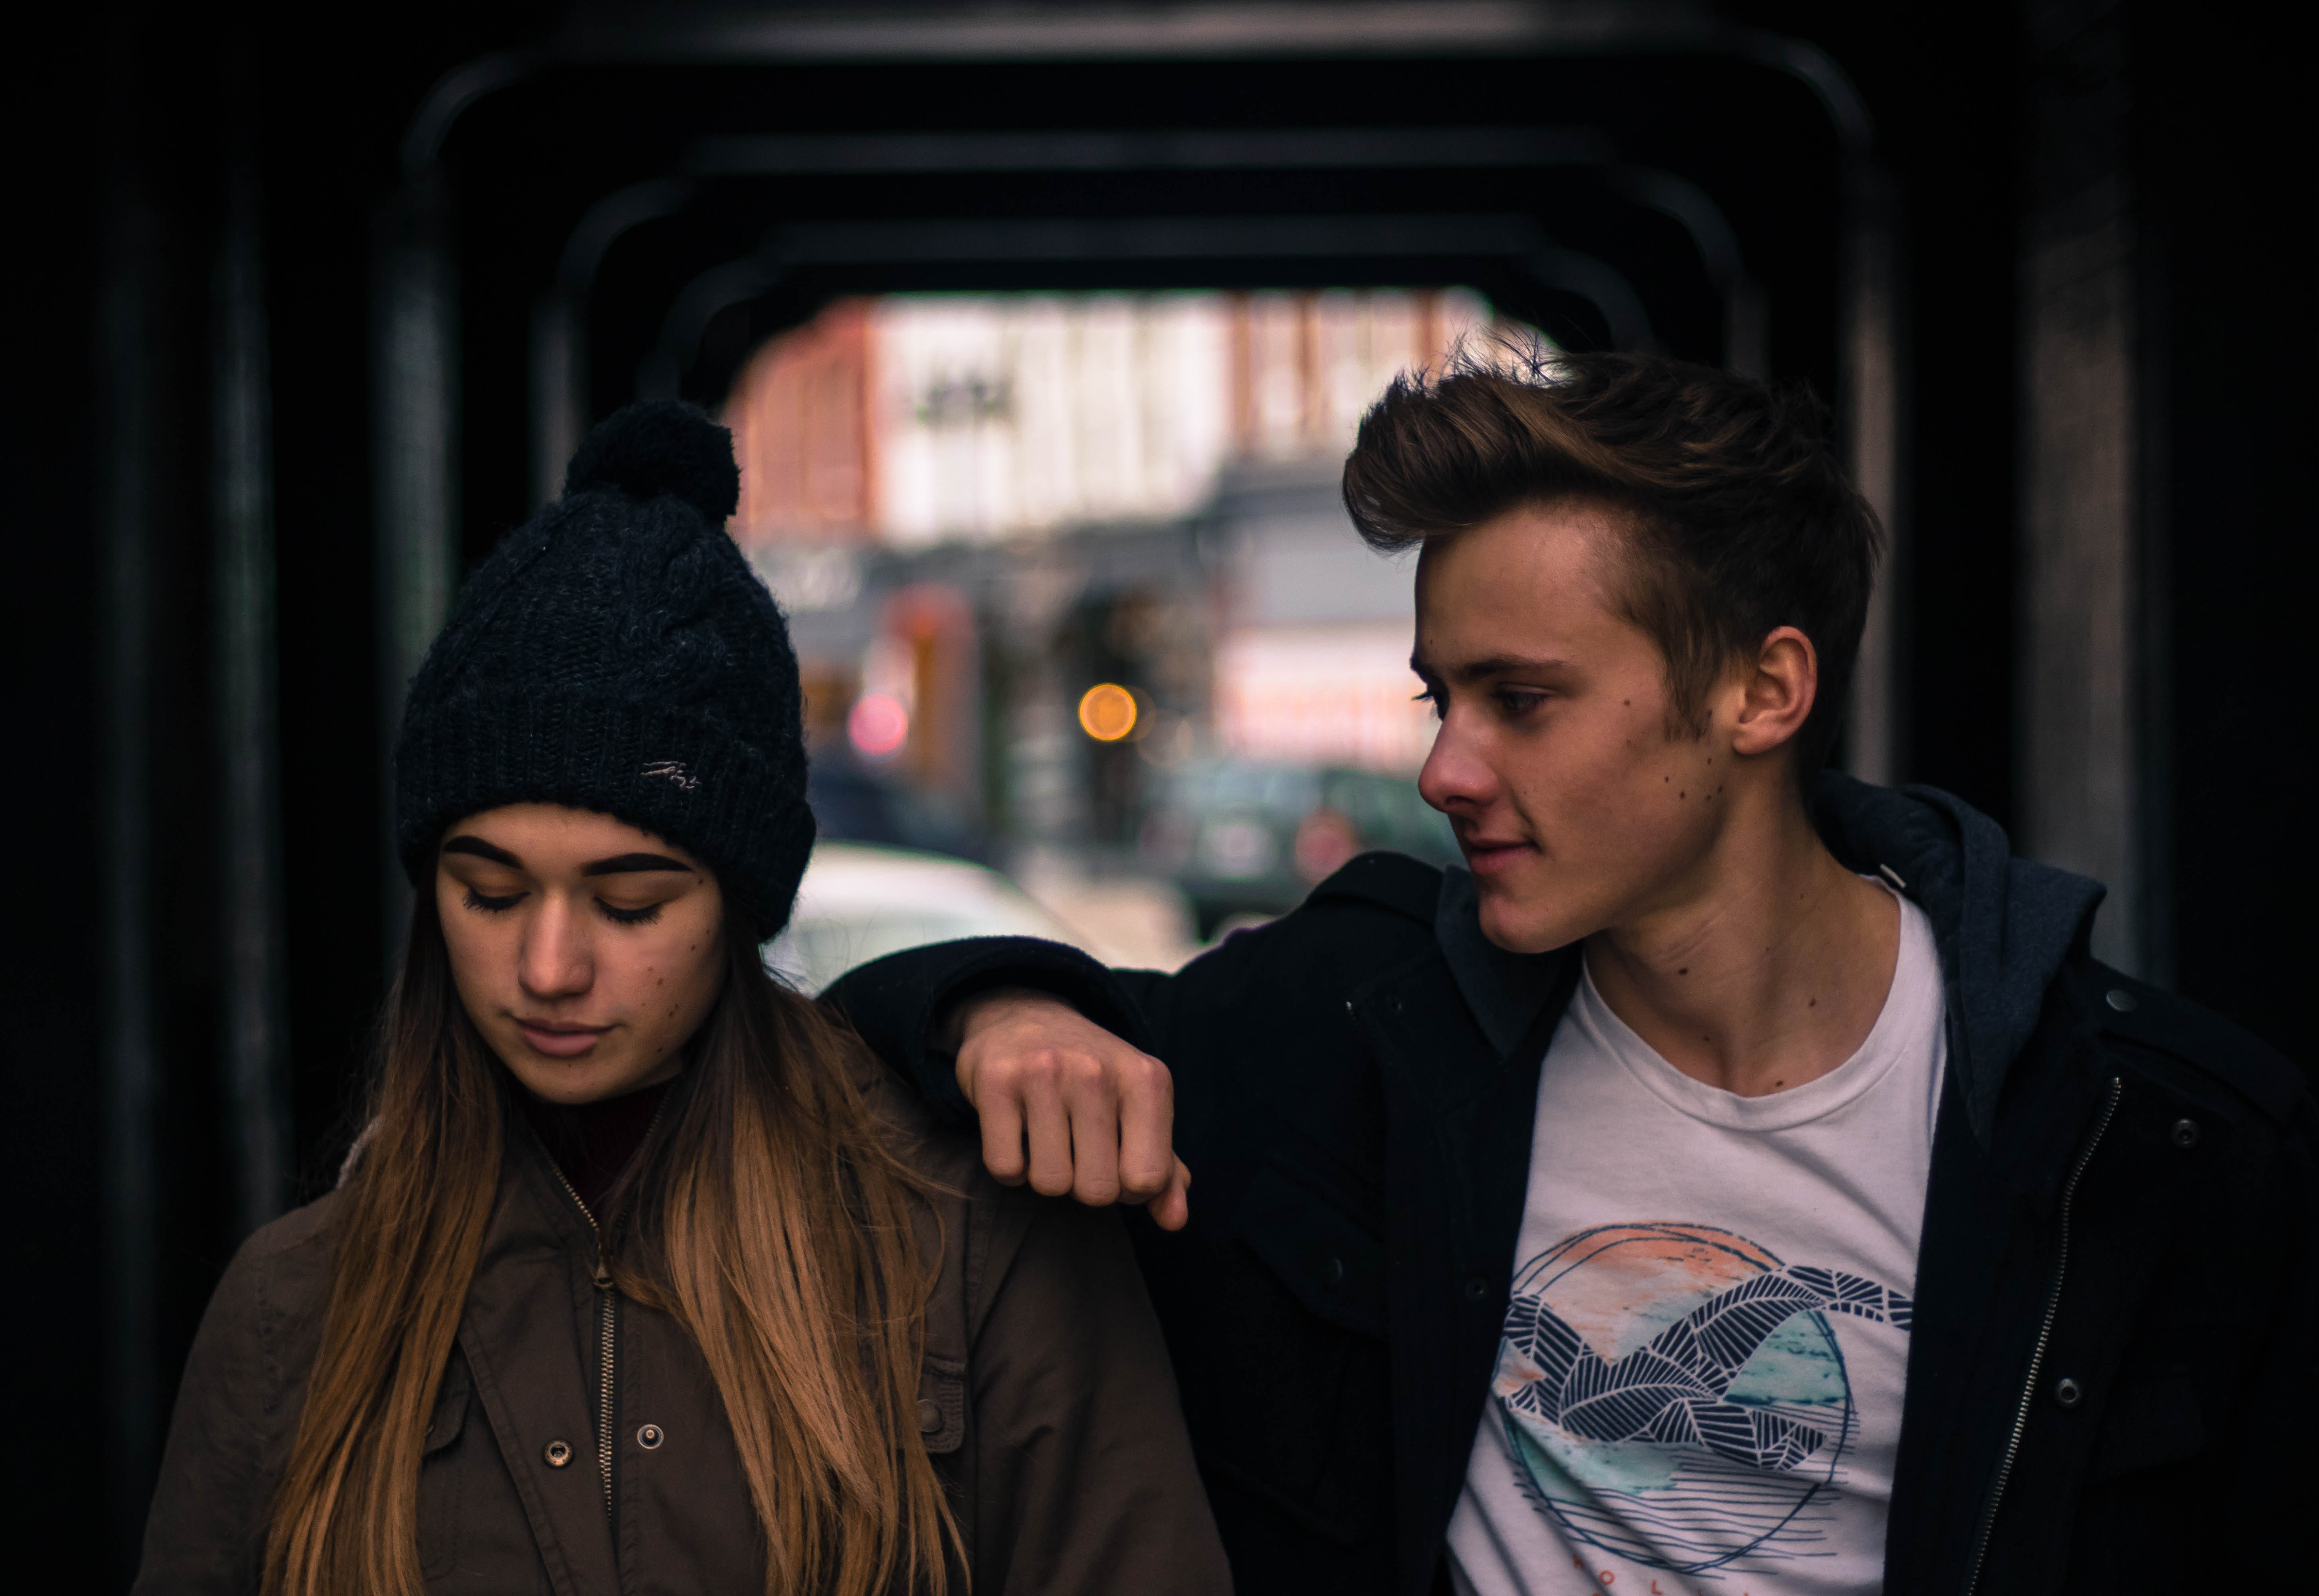 young-couple-in-city-at-night-246367